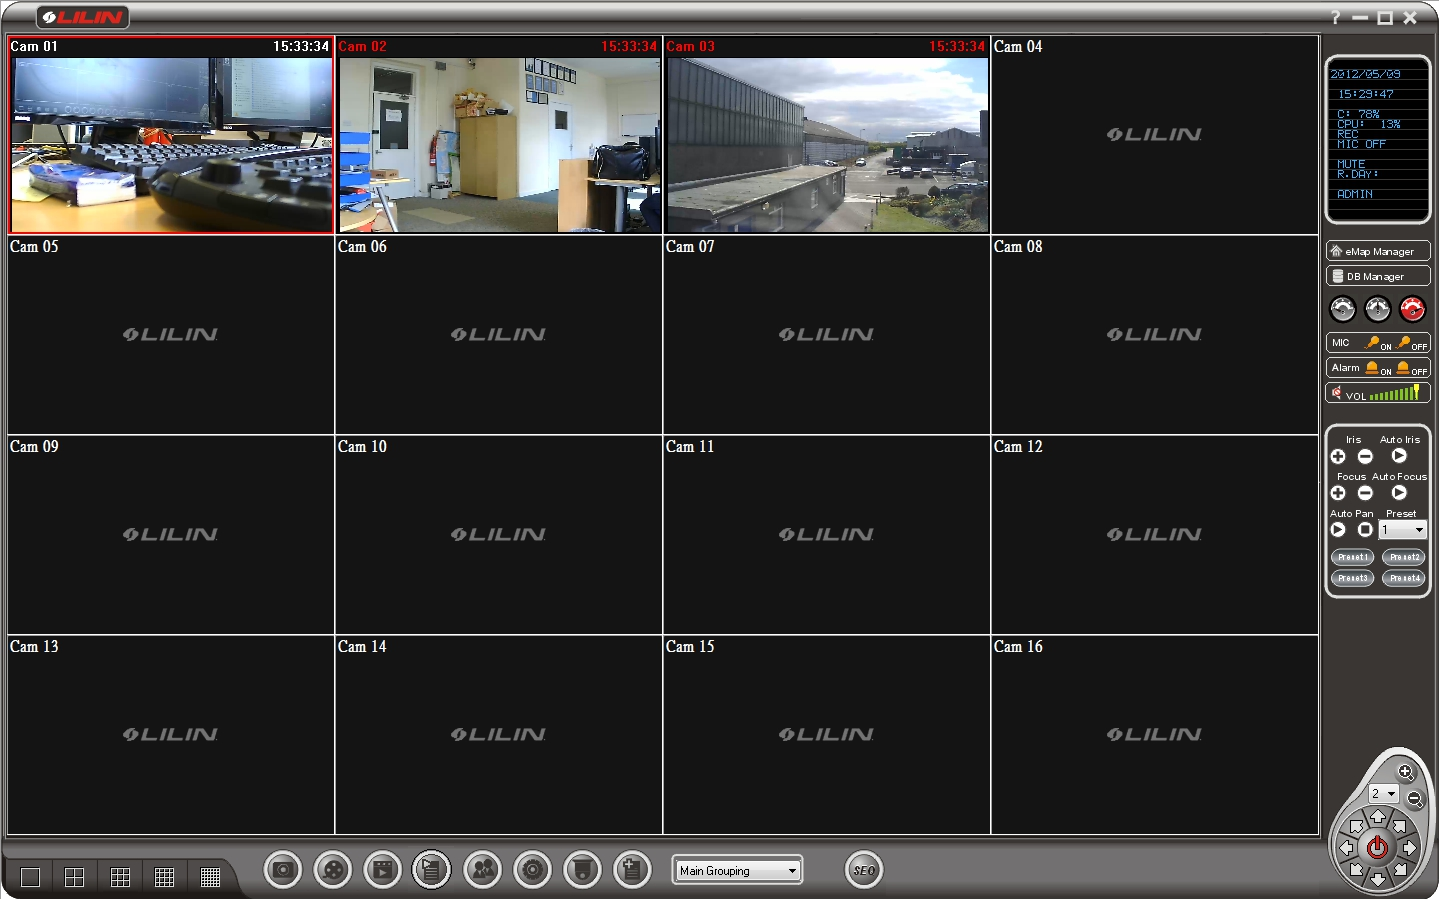 Review of merit lilin 39 s 72 channel vms cmx software for Cctv layout software